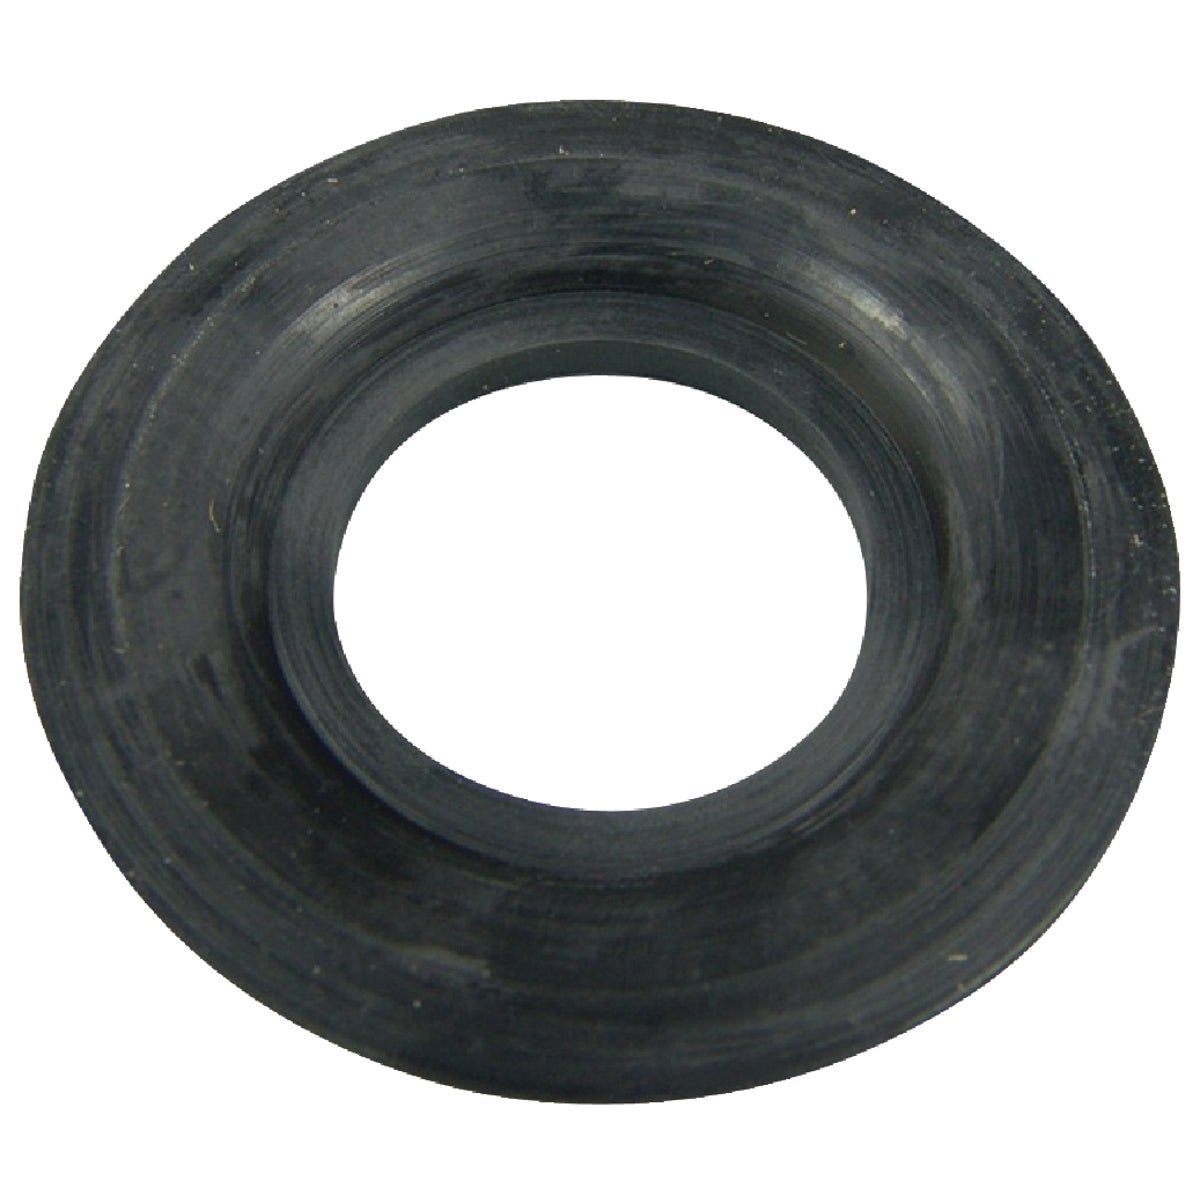 BATH DRAIN GASKET - 37680B by Danco Perfect Match